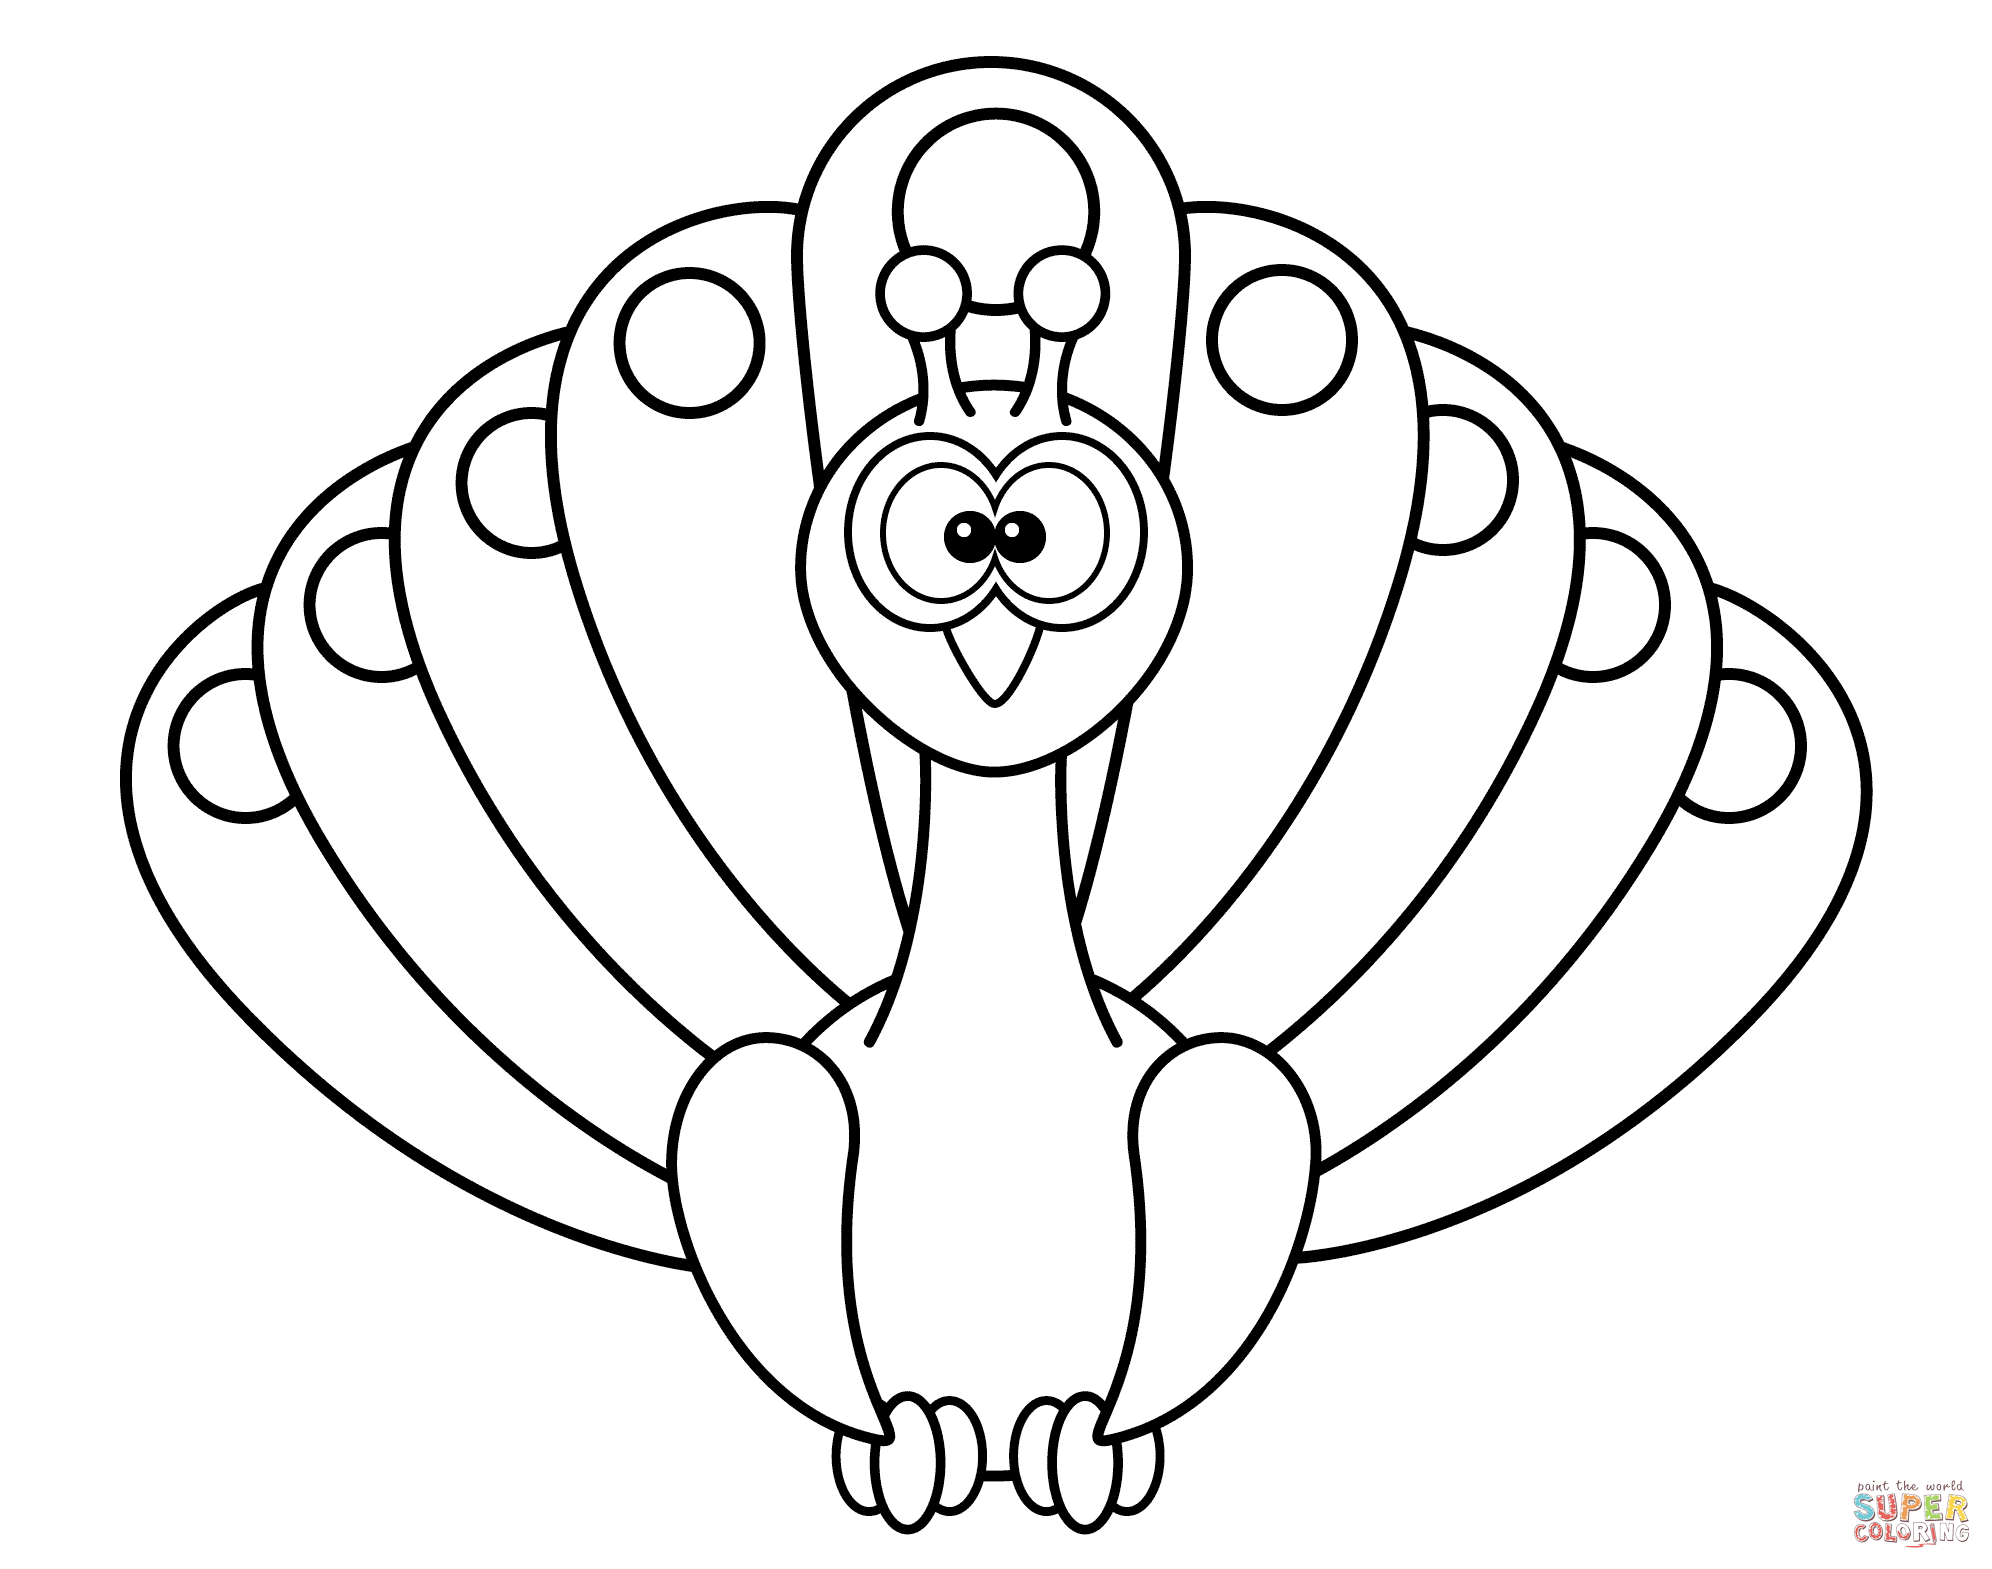 coloring outline image of peacock peacock black and white drawing at getdrawings free download outline of peacock image coloring